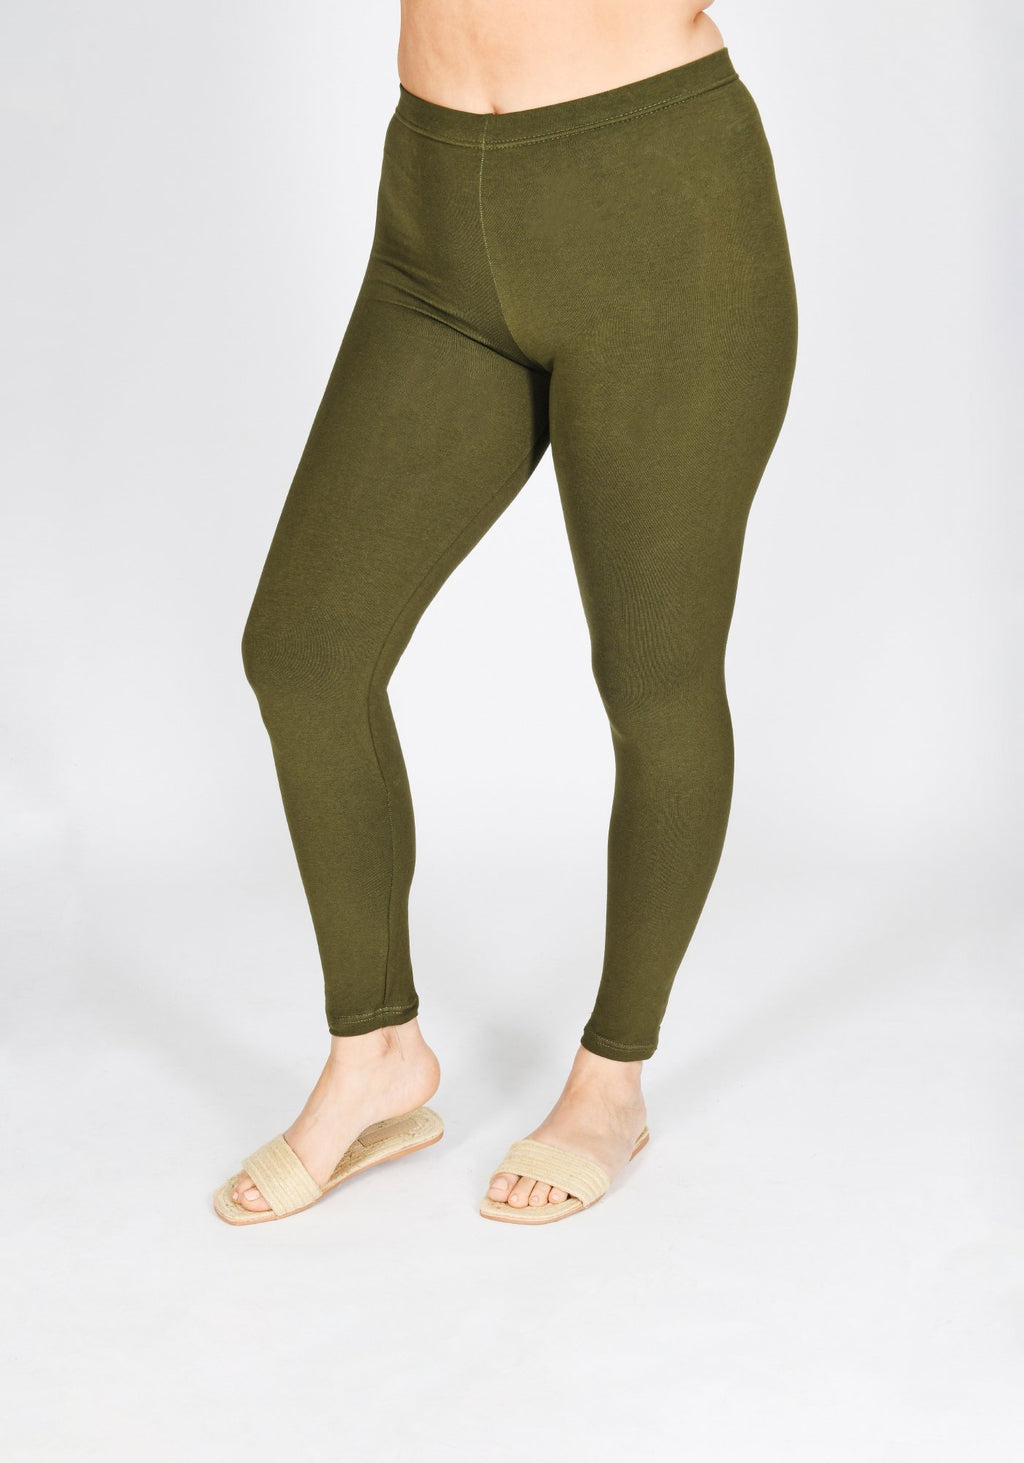 Classic Plus Size Khaki Green Leggings 1